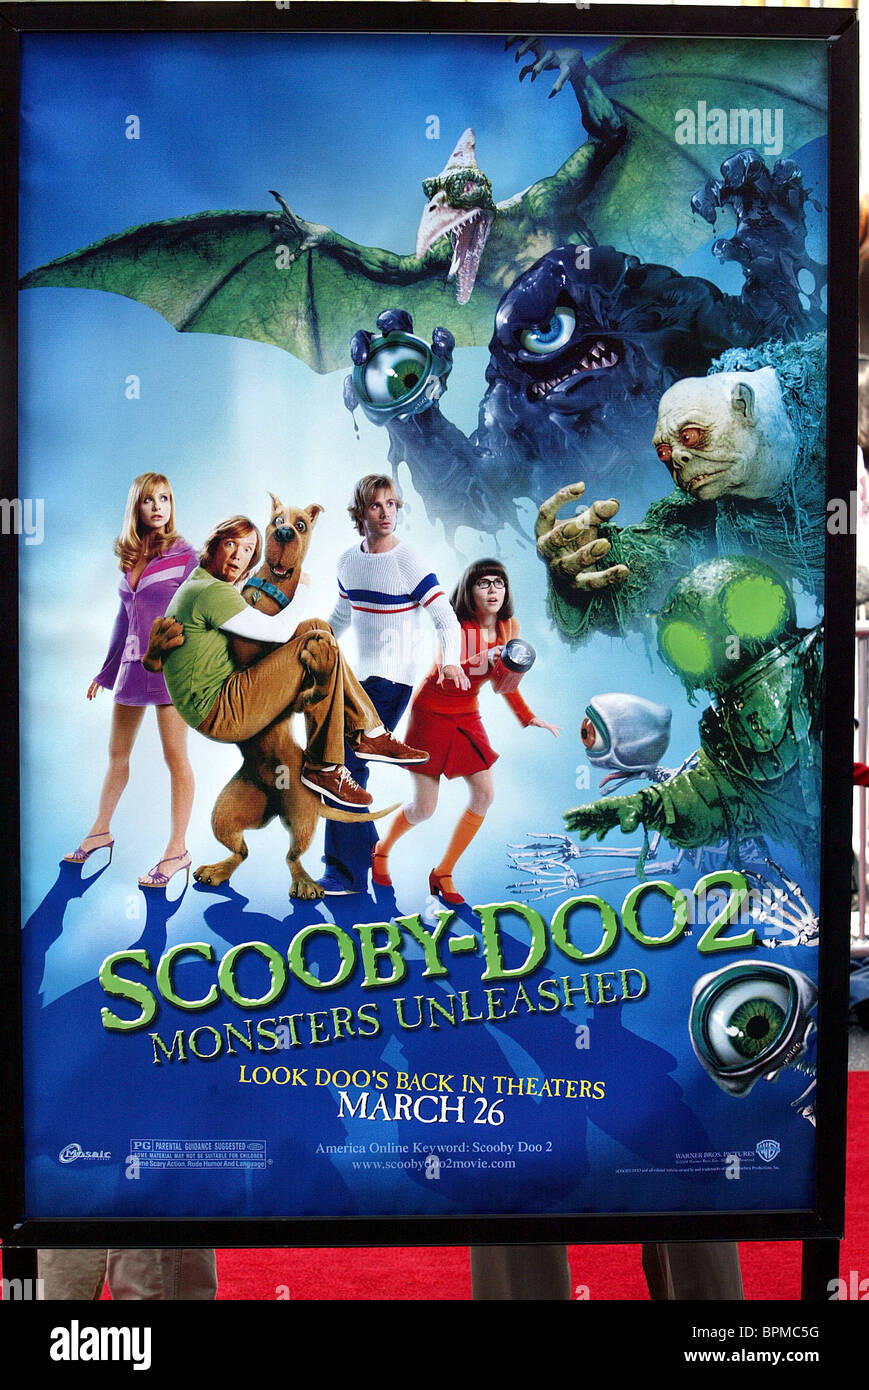 Scooby Doo 2 Monsters Unleashed Poster Scooby Doo 2 U S Poster Stock Photo Alamy